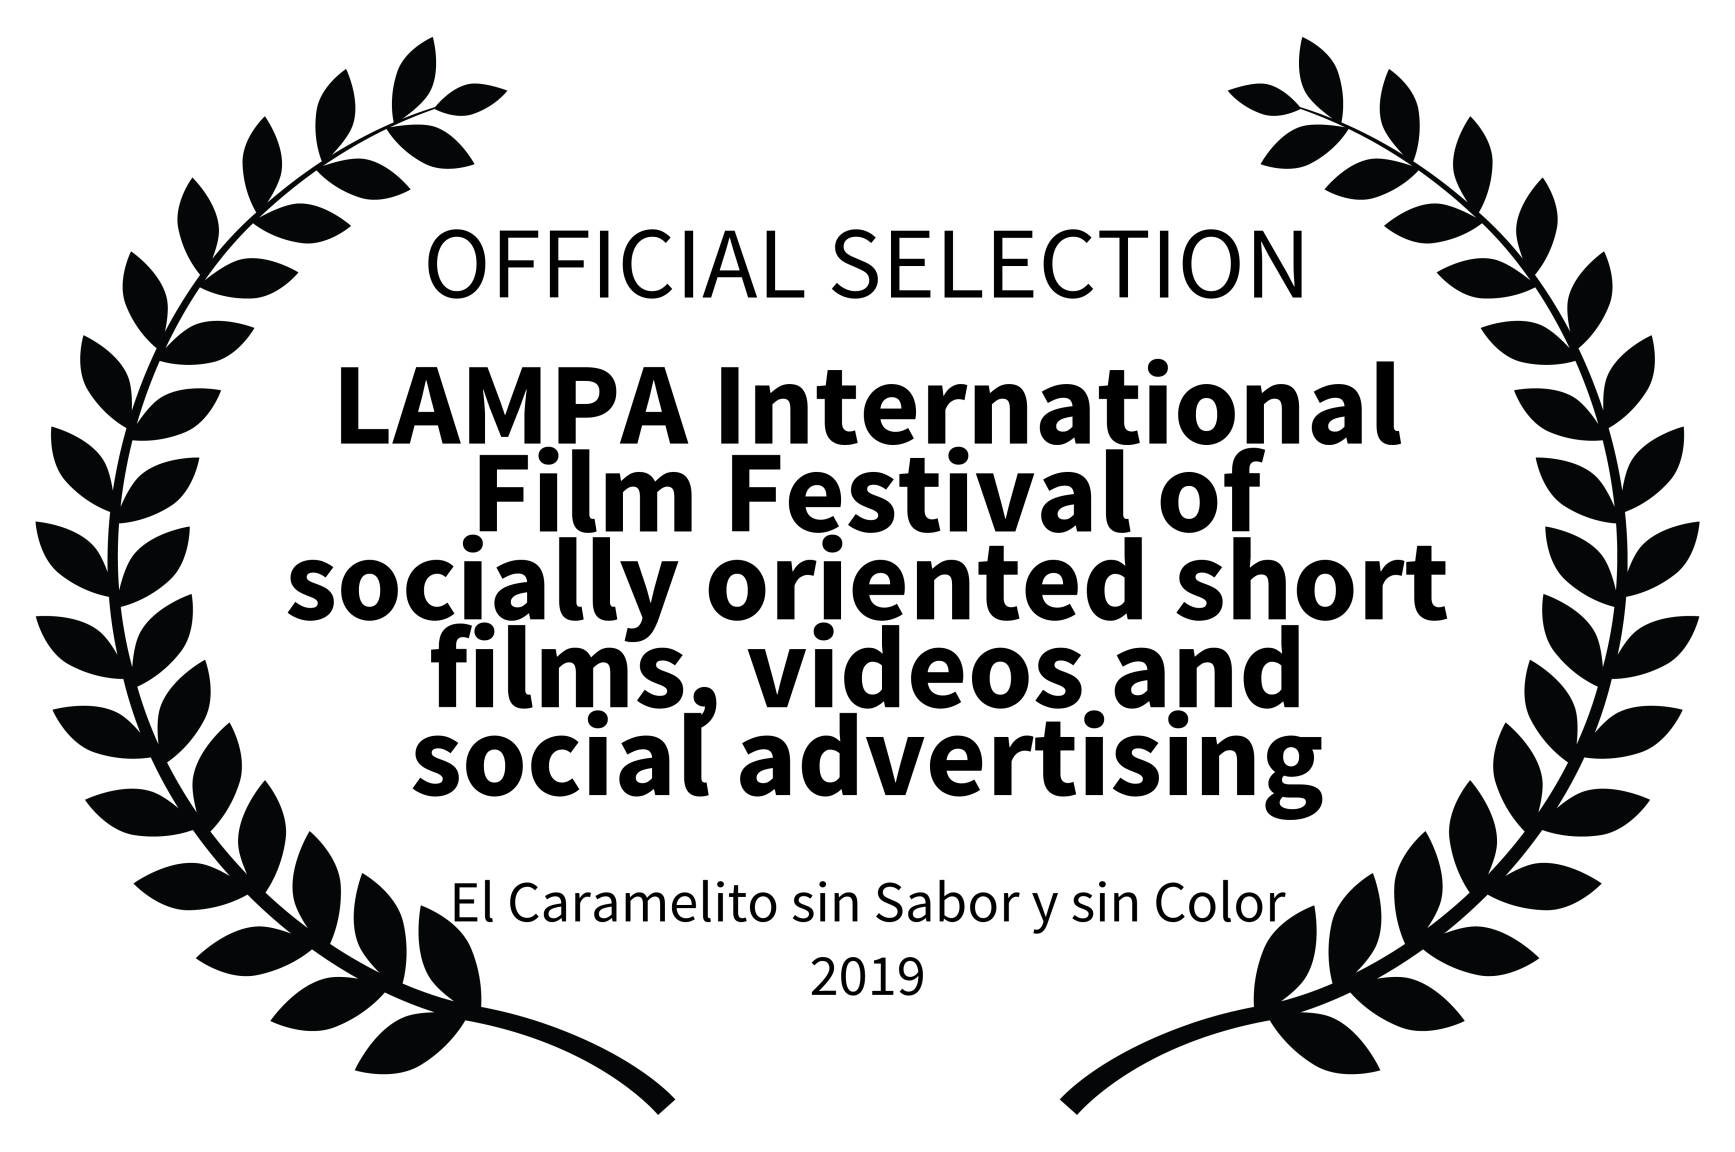 OFFICIAL SELECTION - LAMPA International